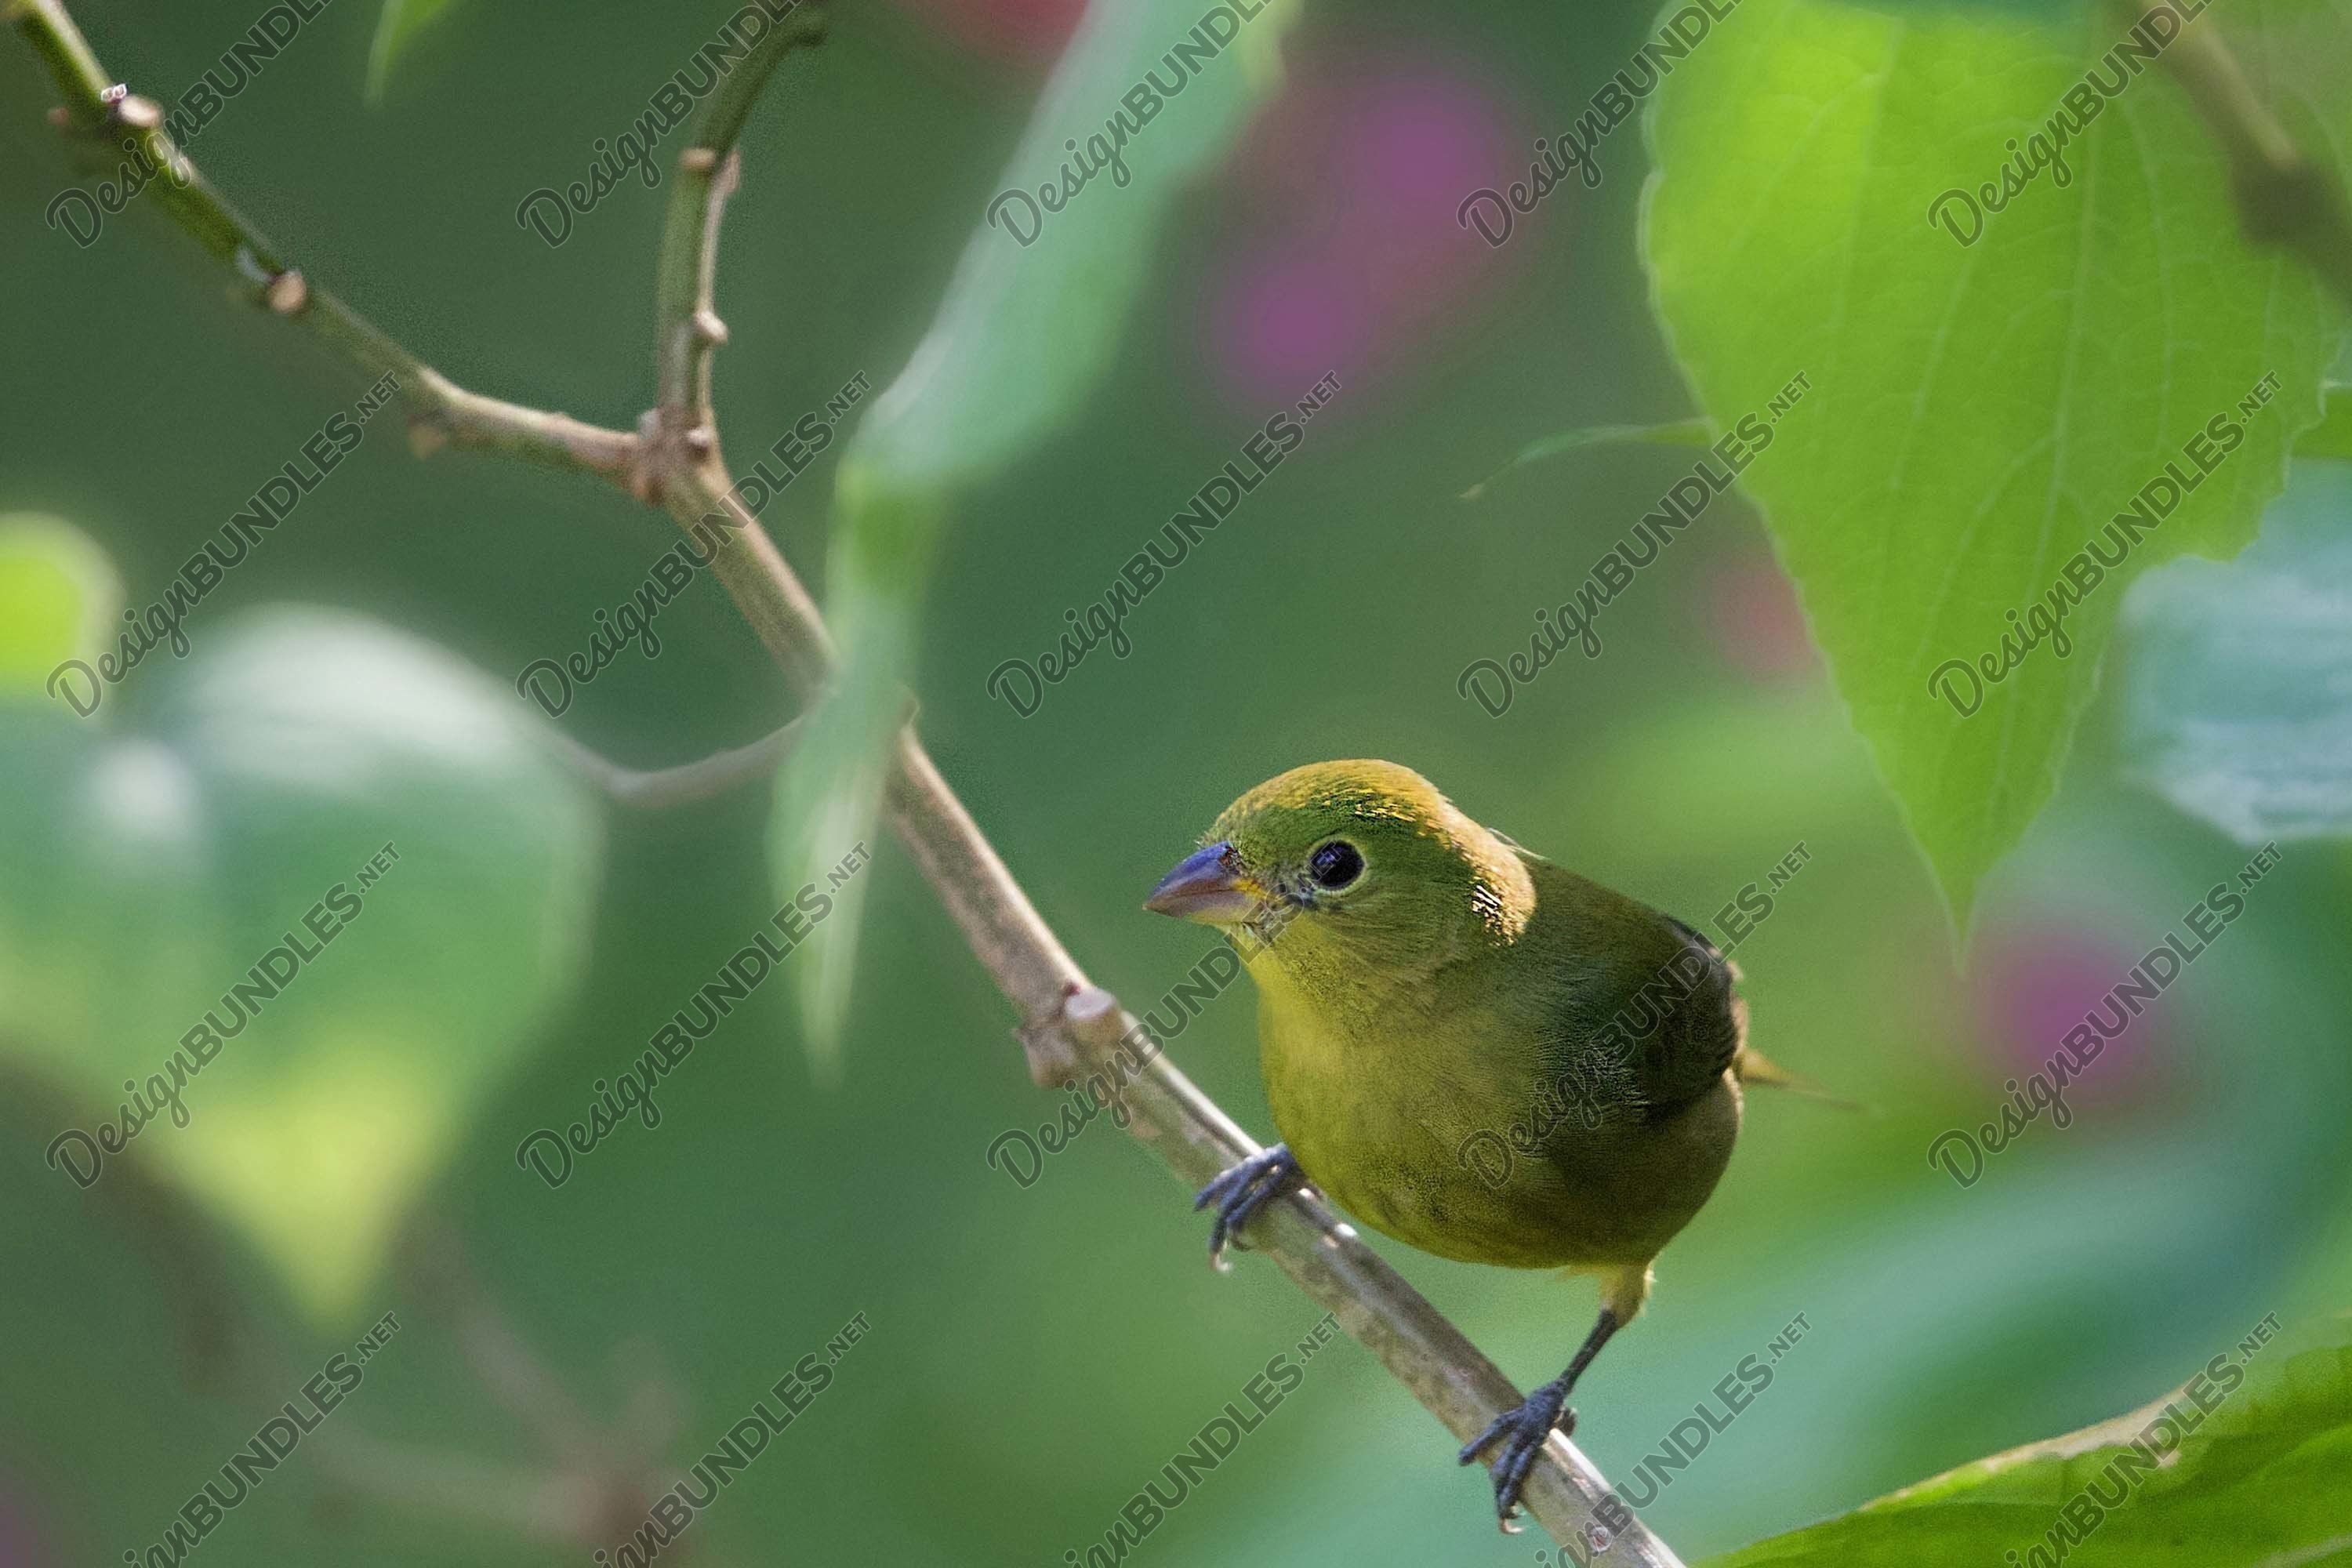 Stock Photo - Close-Up Of Bird Perching Outdoors example image 1